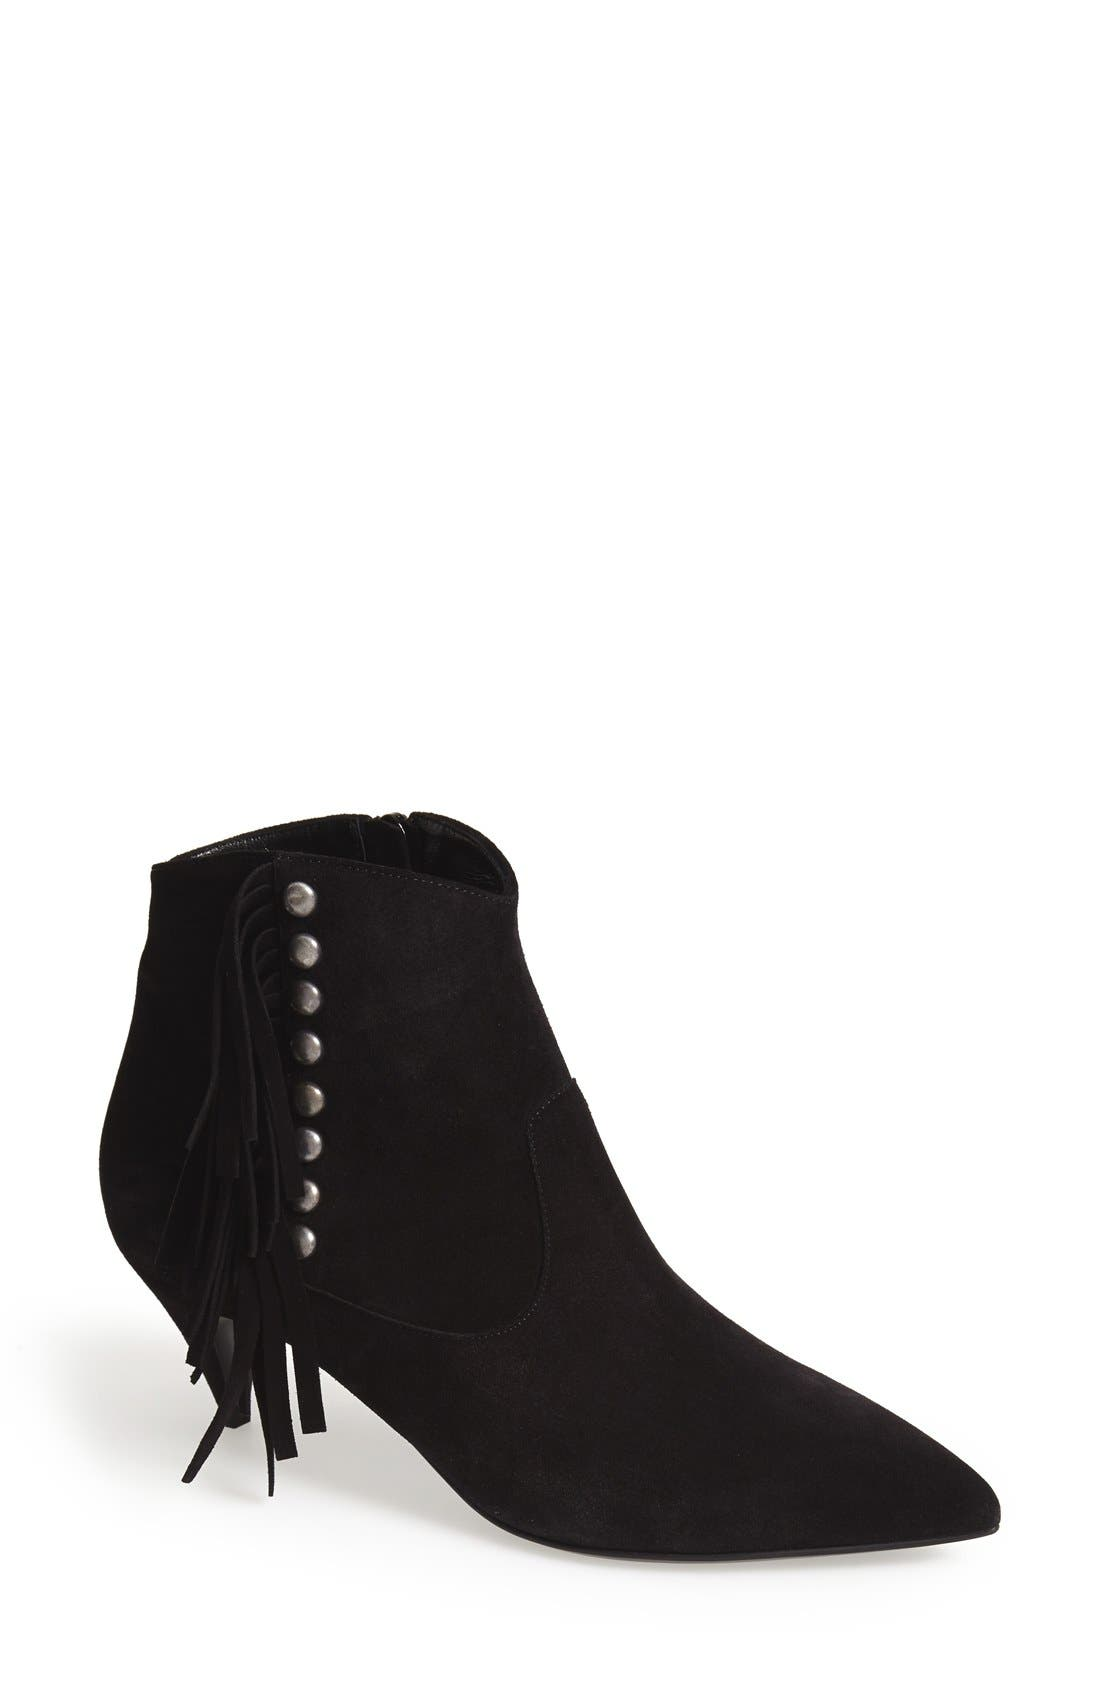 Alternate Image 1 Selected - Saint Laurent 'Cat' Fringe Pointy Toe Bootie (Women)